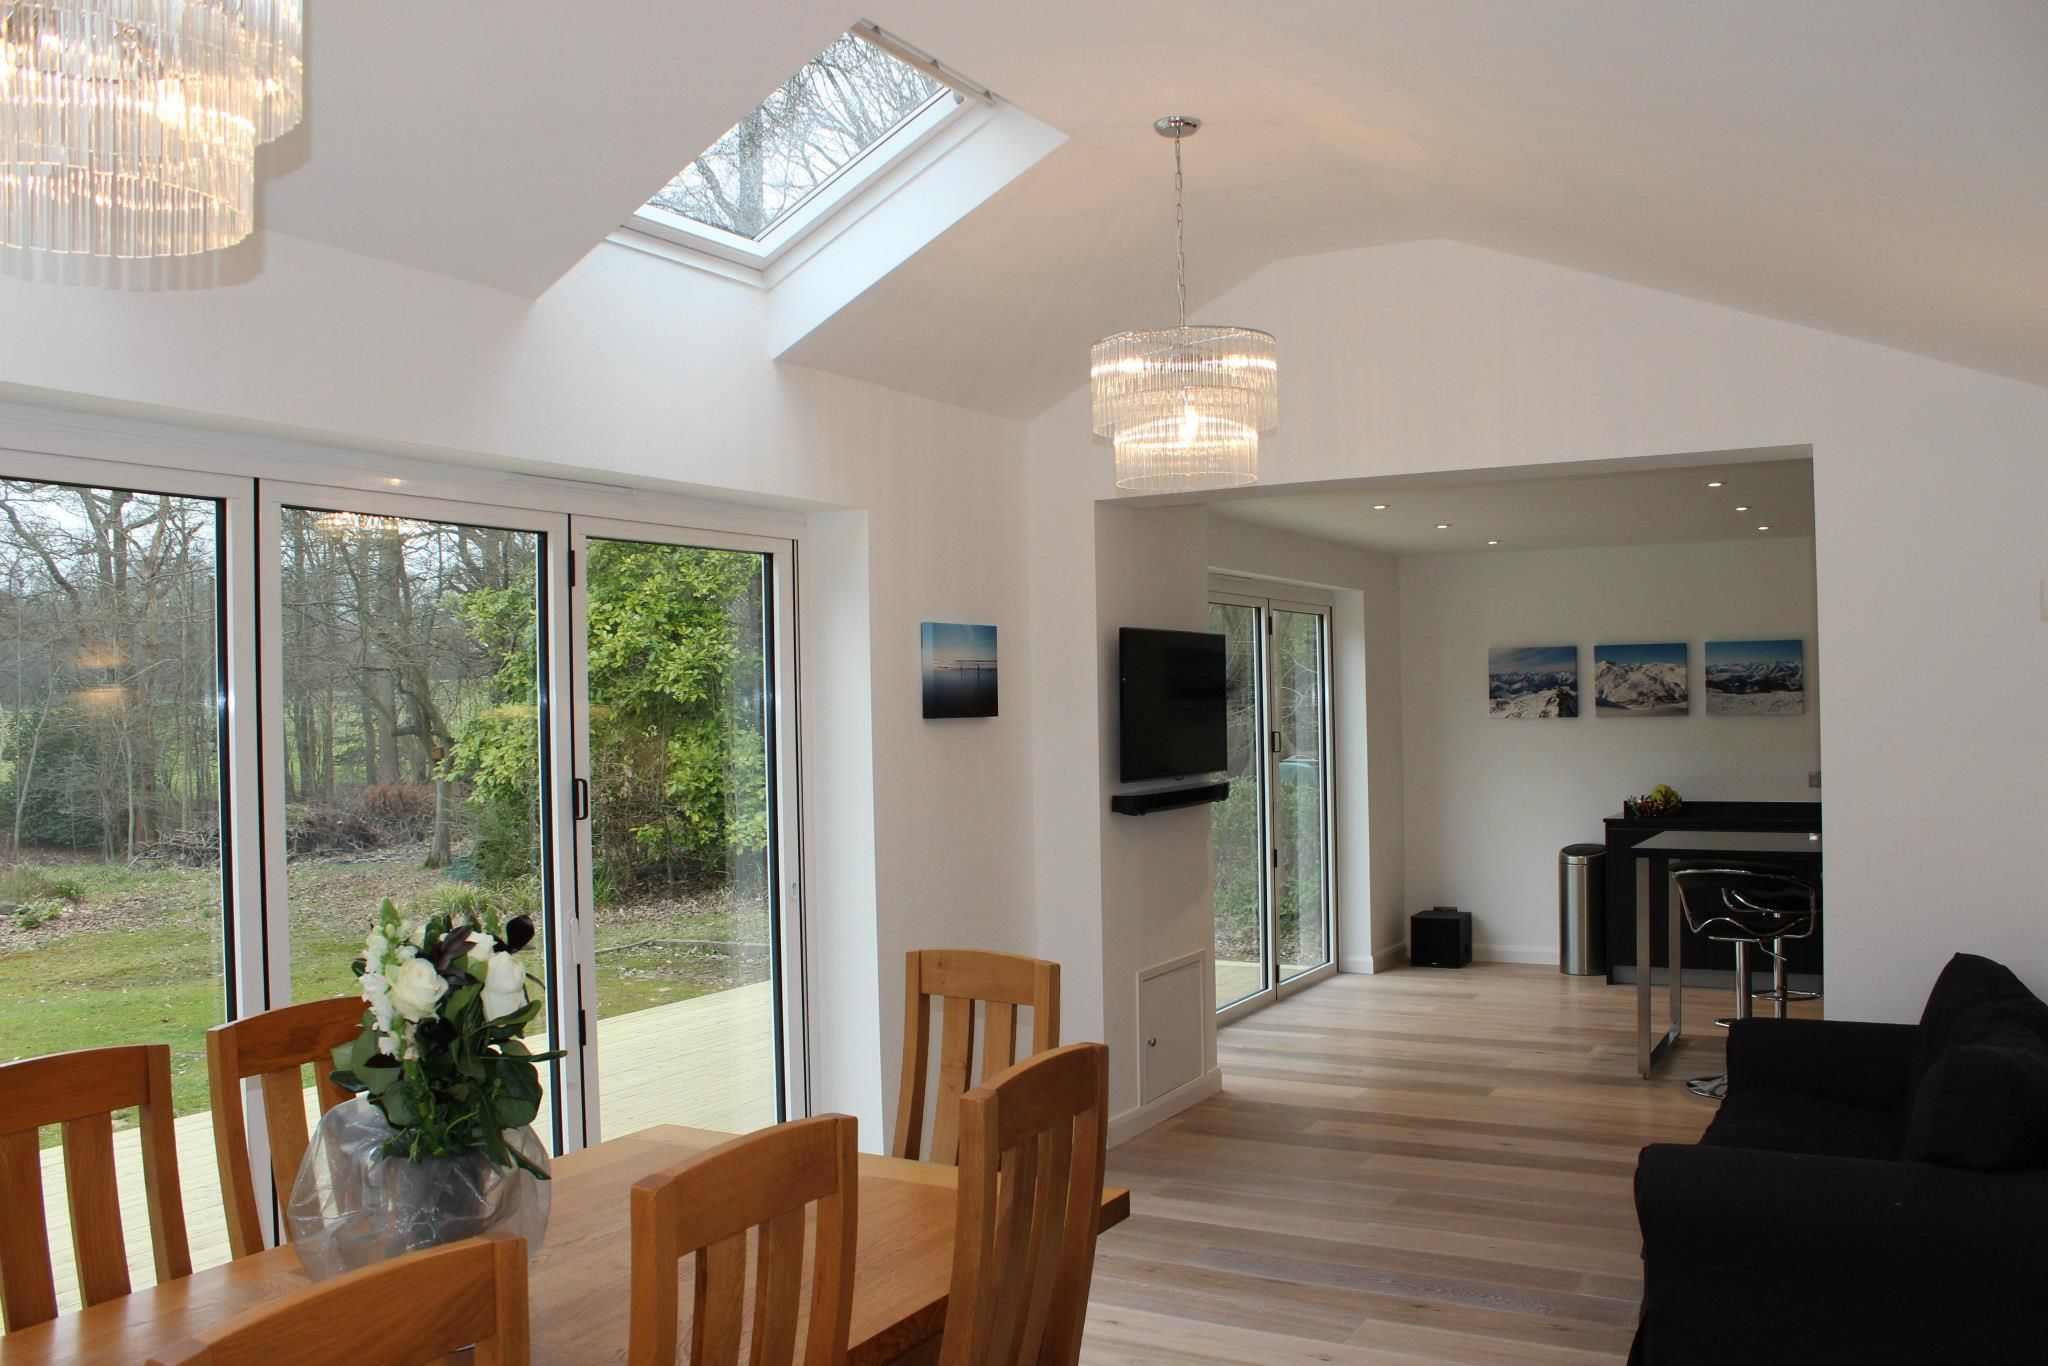 Kitchen Diner Flooring 2 X Sets Of Bi Fold Doors Onto Decked Area With Skylights And